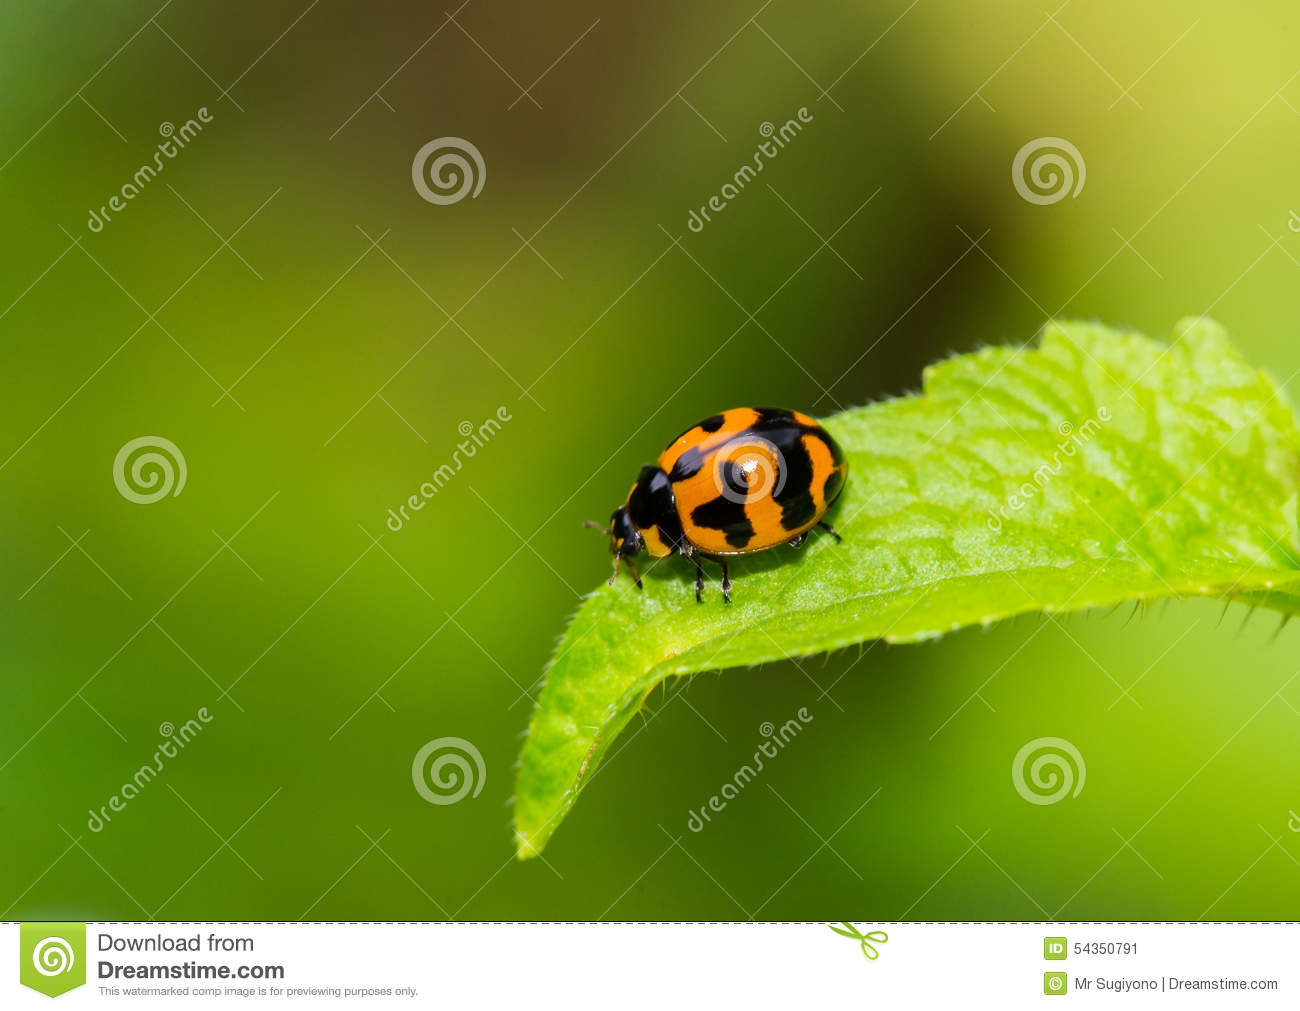 Lady bug on the green leaf stock image. Image of bamboo - 54350791